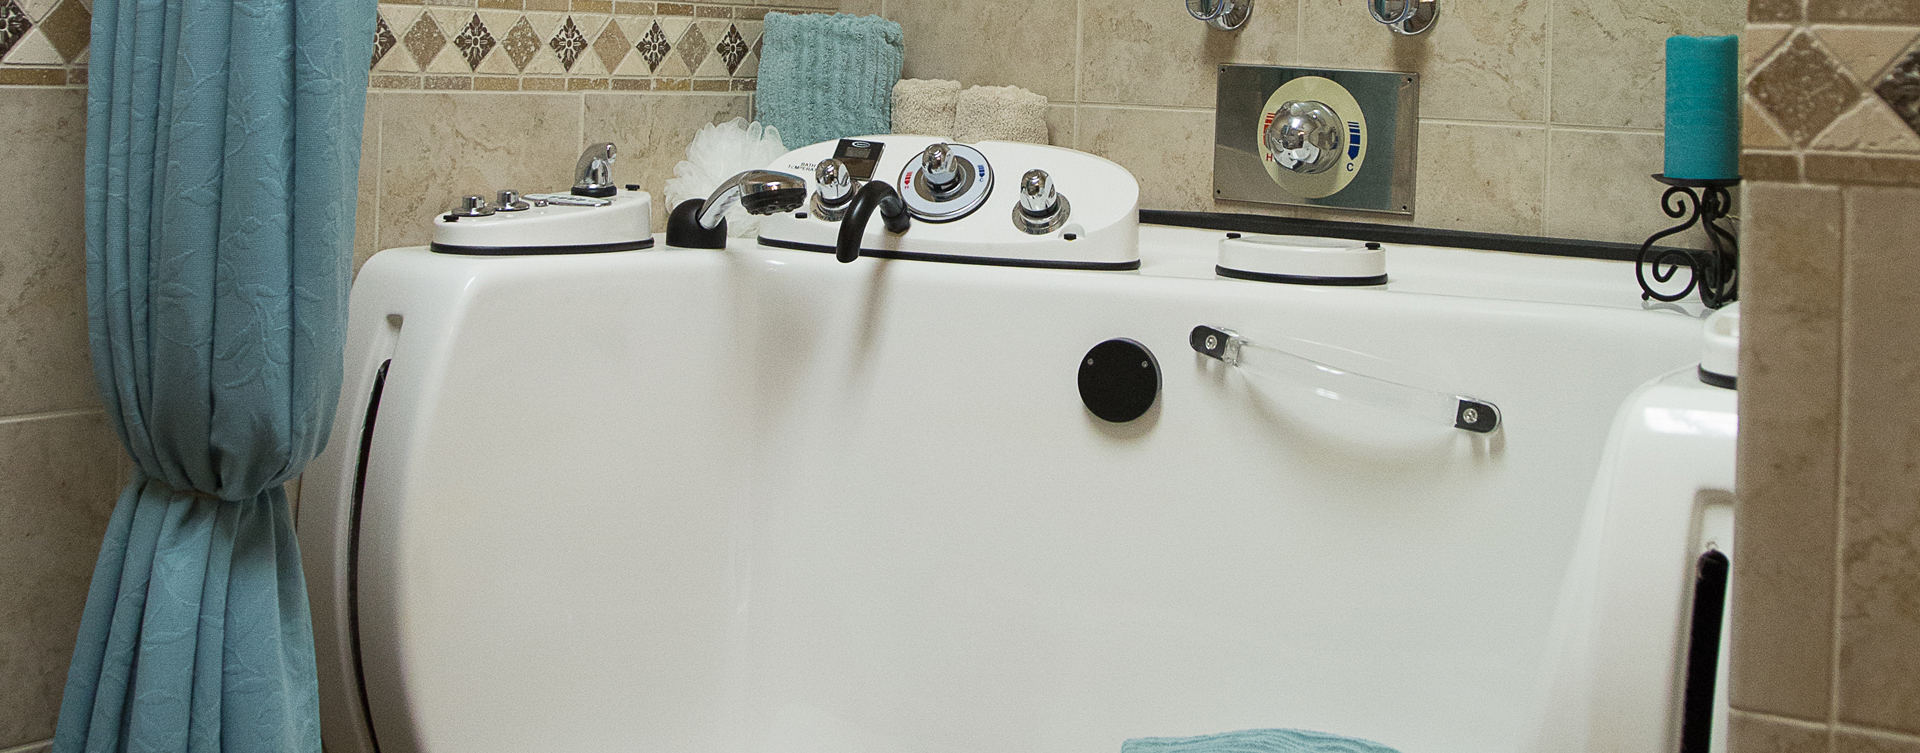 Our whirlpool bathtub creates a spa-like environment tailored to enhance your relaxation and enjoyment at Bickford of Moline